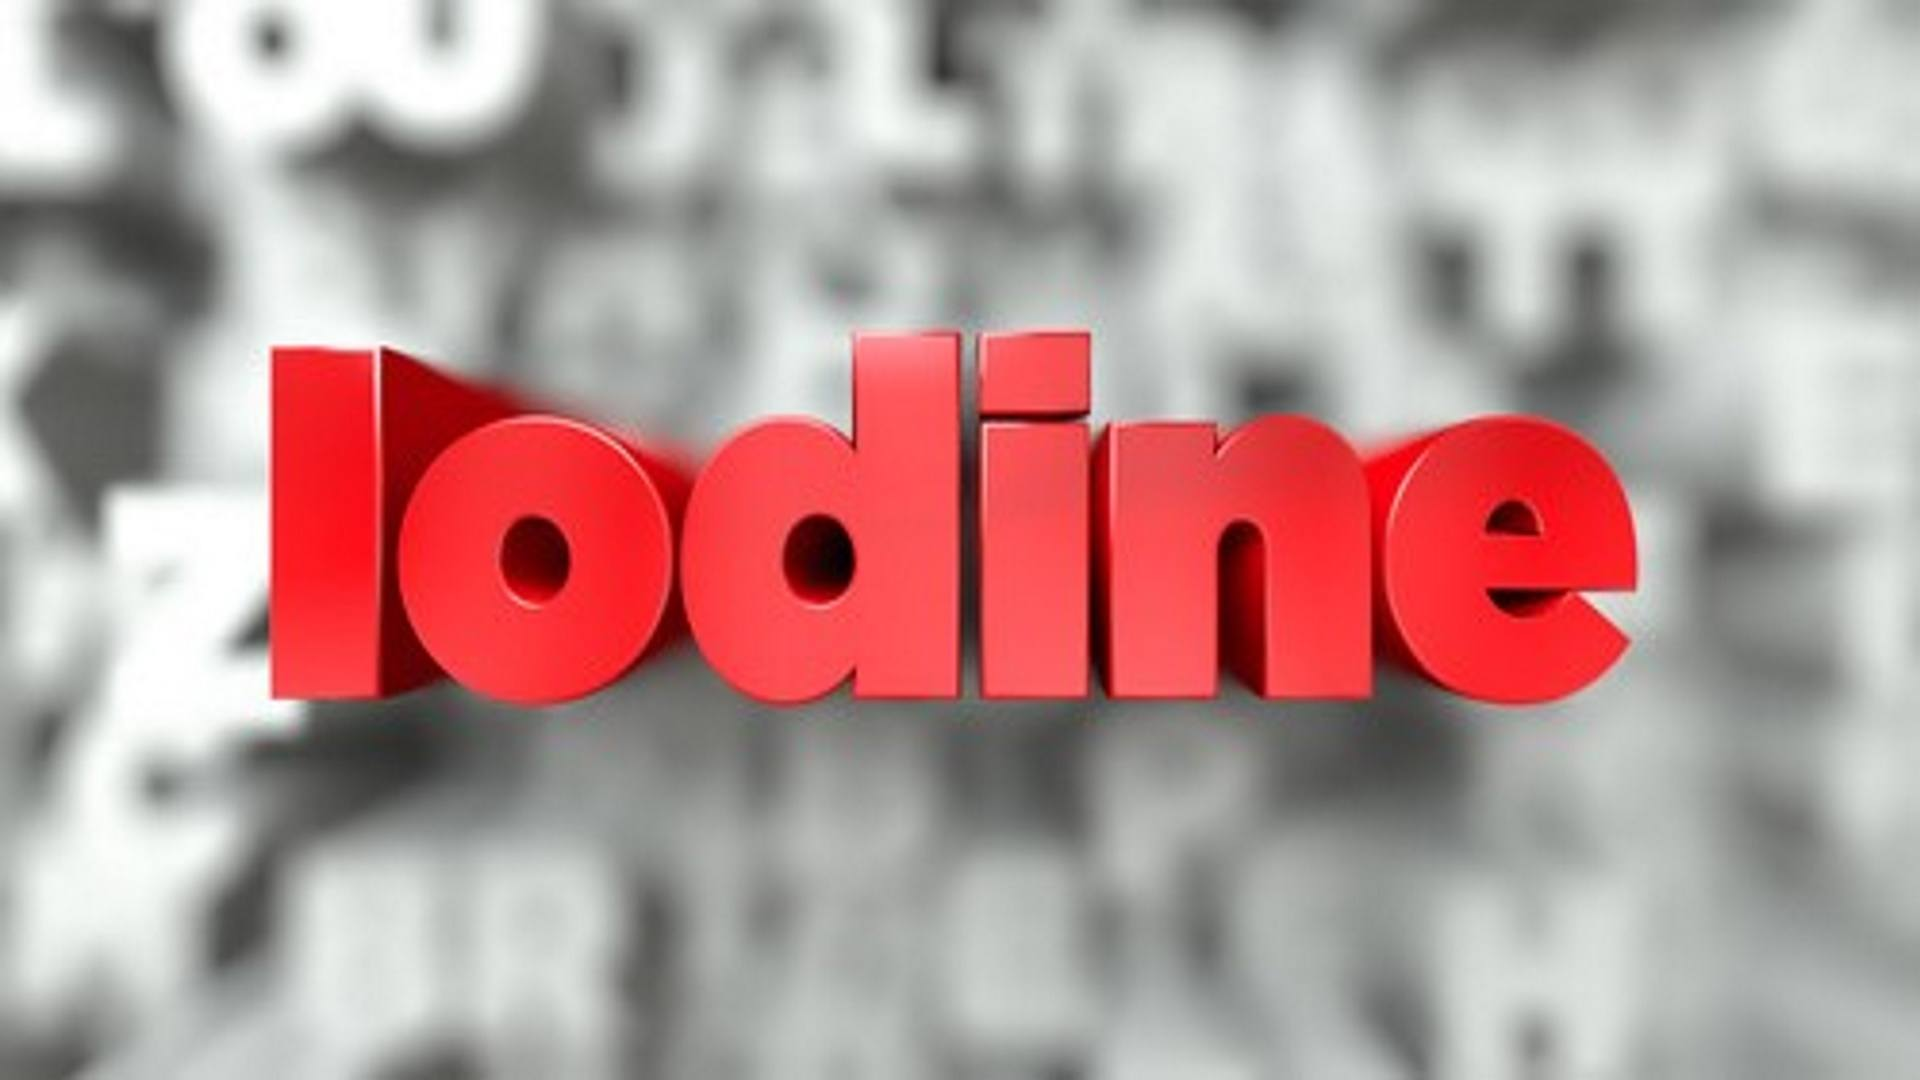 Iodine Deficiency and Radioactive  Iodine Cause Cancer and Thyroid Disease